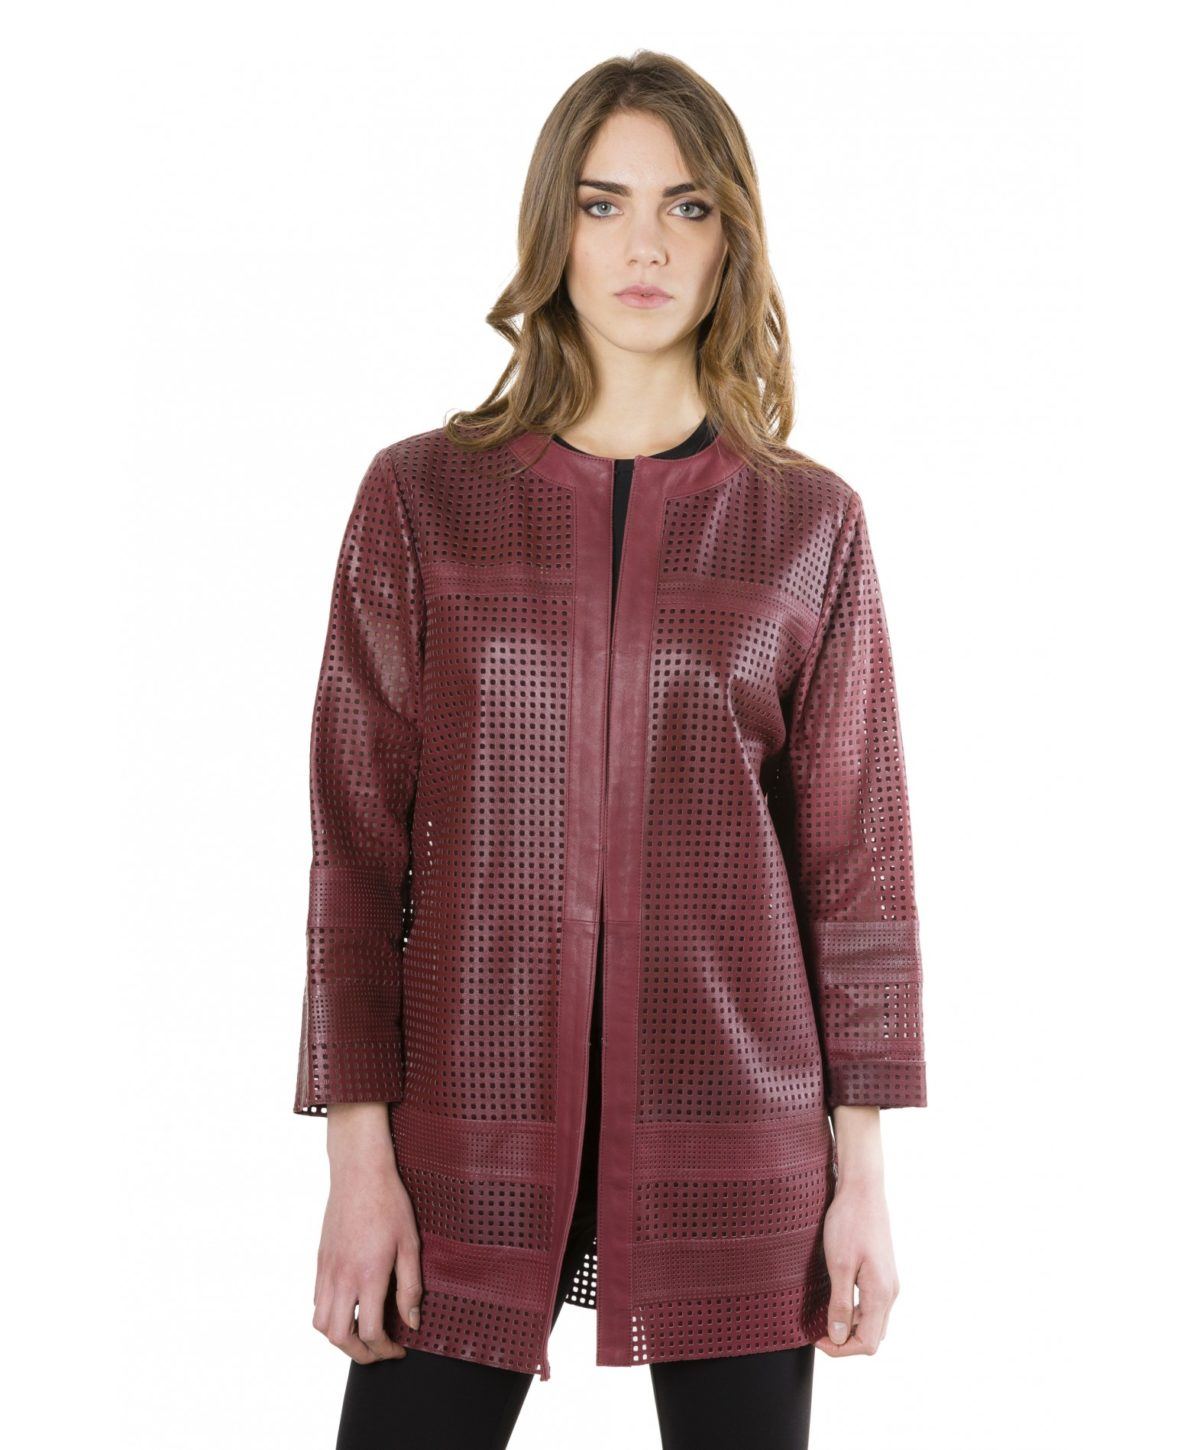 madox-bordeaux-color-lamb-lasered-leather-jacket